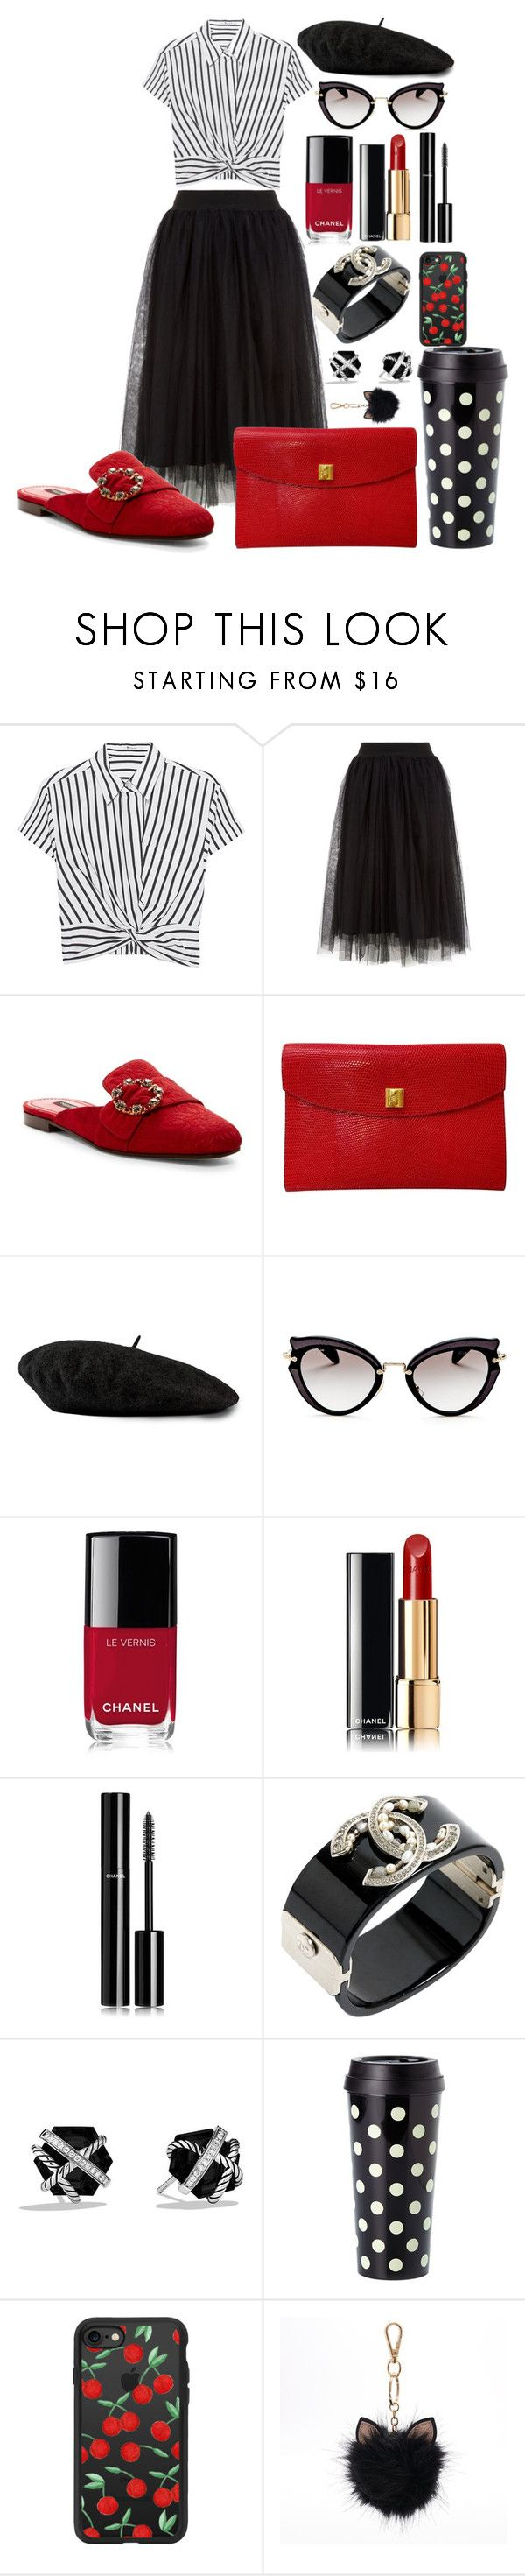 """Dressed for a Paris morning"" by pulseofthematter ❤ liked on Polyvore featuring T By Alexander Wang, Dolce&Gabbana, Hermès, Gucci, Miu Miu, Chanel, David Yurman, Kate Spade, Casetify and LC Lauren Conrad"